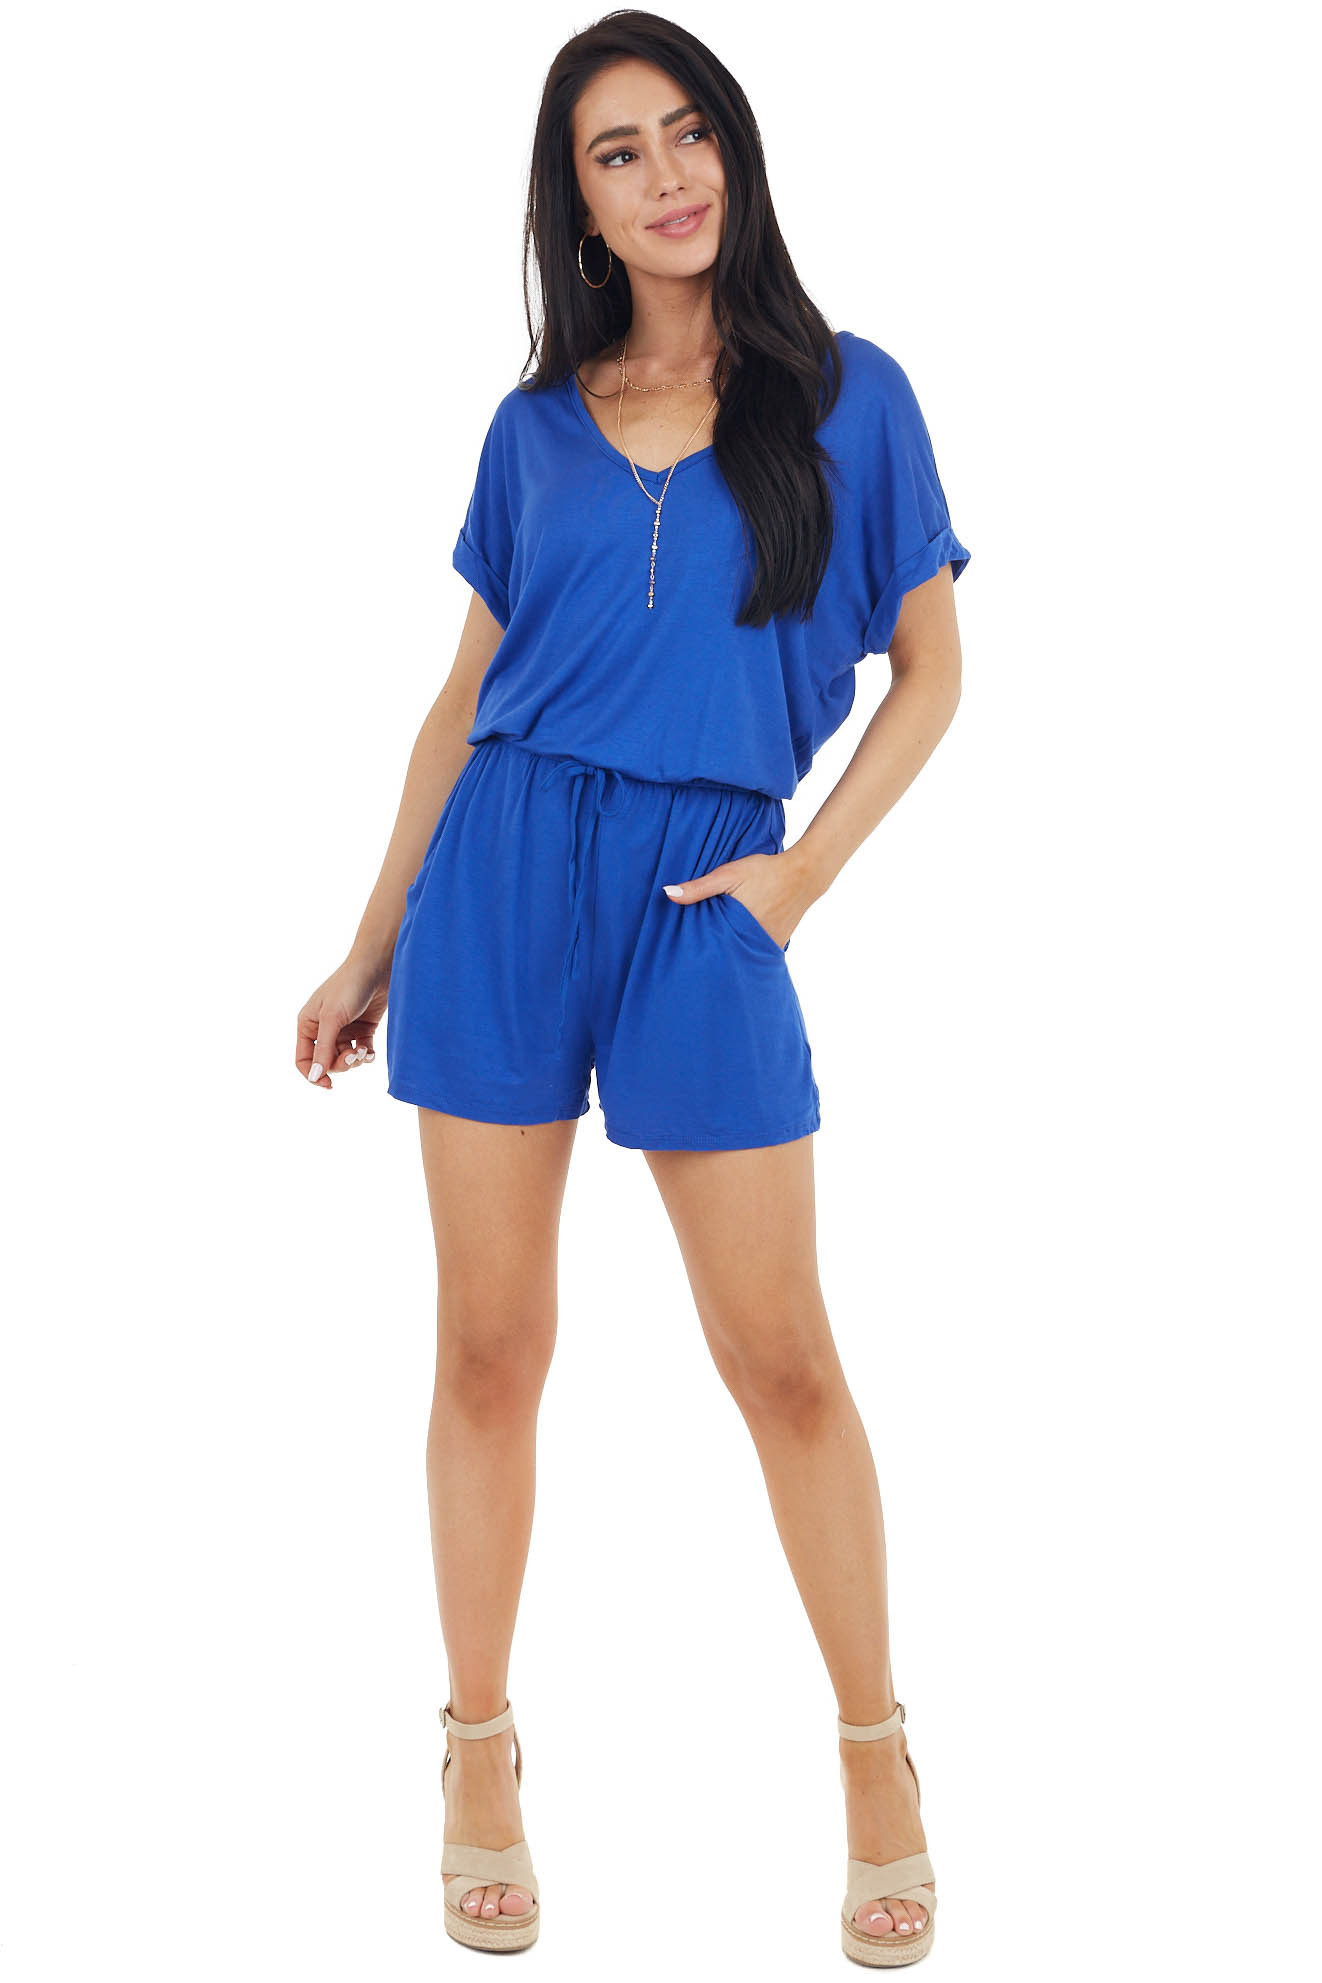 Royal Blue Short Sleeve Stretchy Knit Romper with Pockets